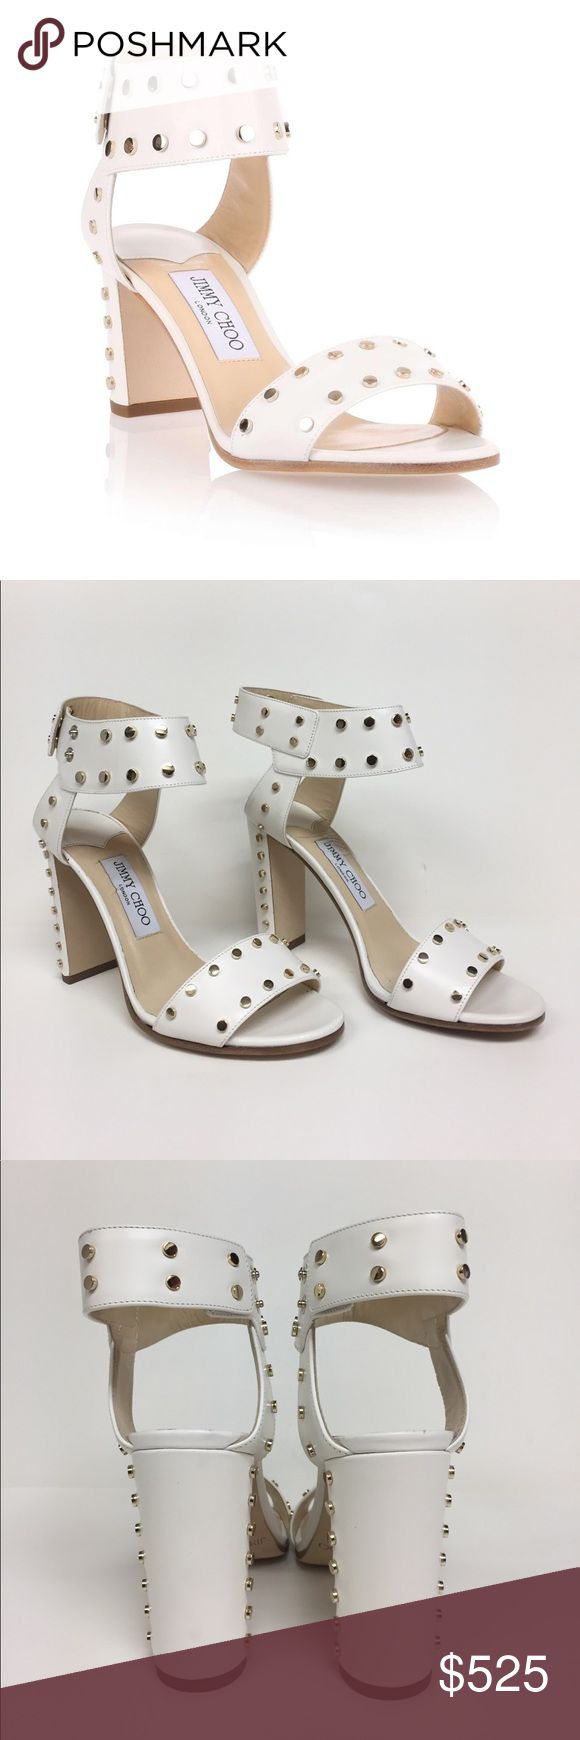 "Jimmy Choo Veto White stud Rockstud Sandals Clean linear lines are unjected with personality. White leather with gold studs  Snap closure.,Bold look that does not feel heavy., heel is 4"" Lightly worn. You can see that they are in fabulous condition. Jimmy Choo Shoes Sandals"